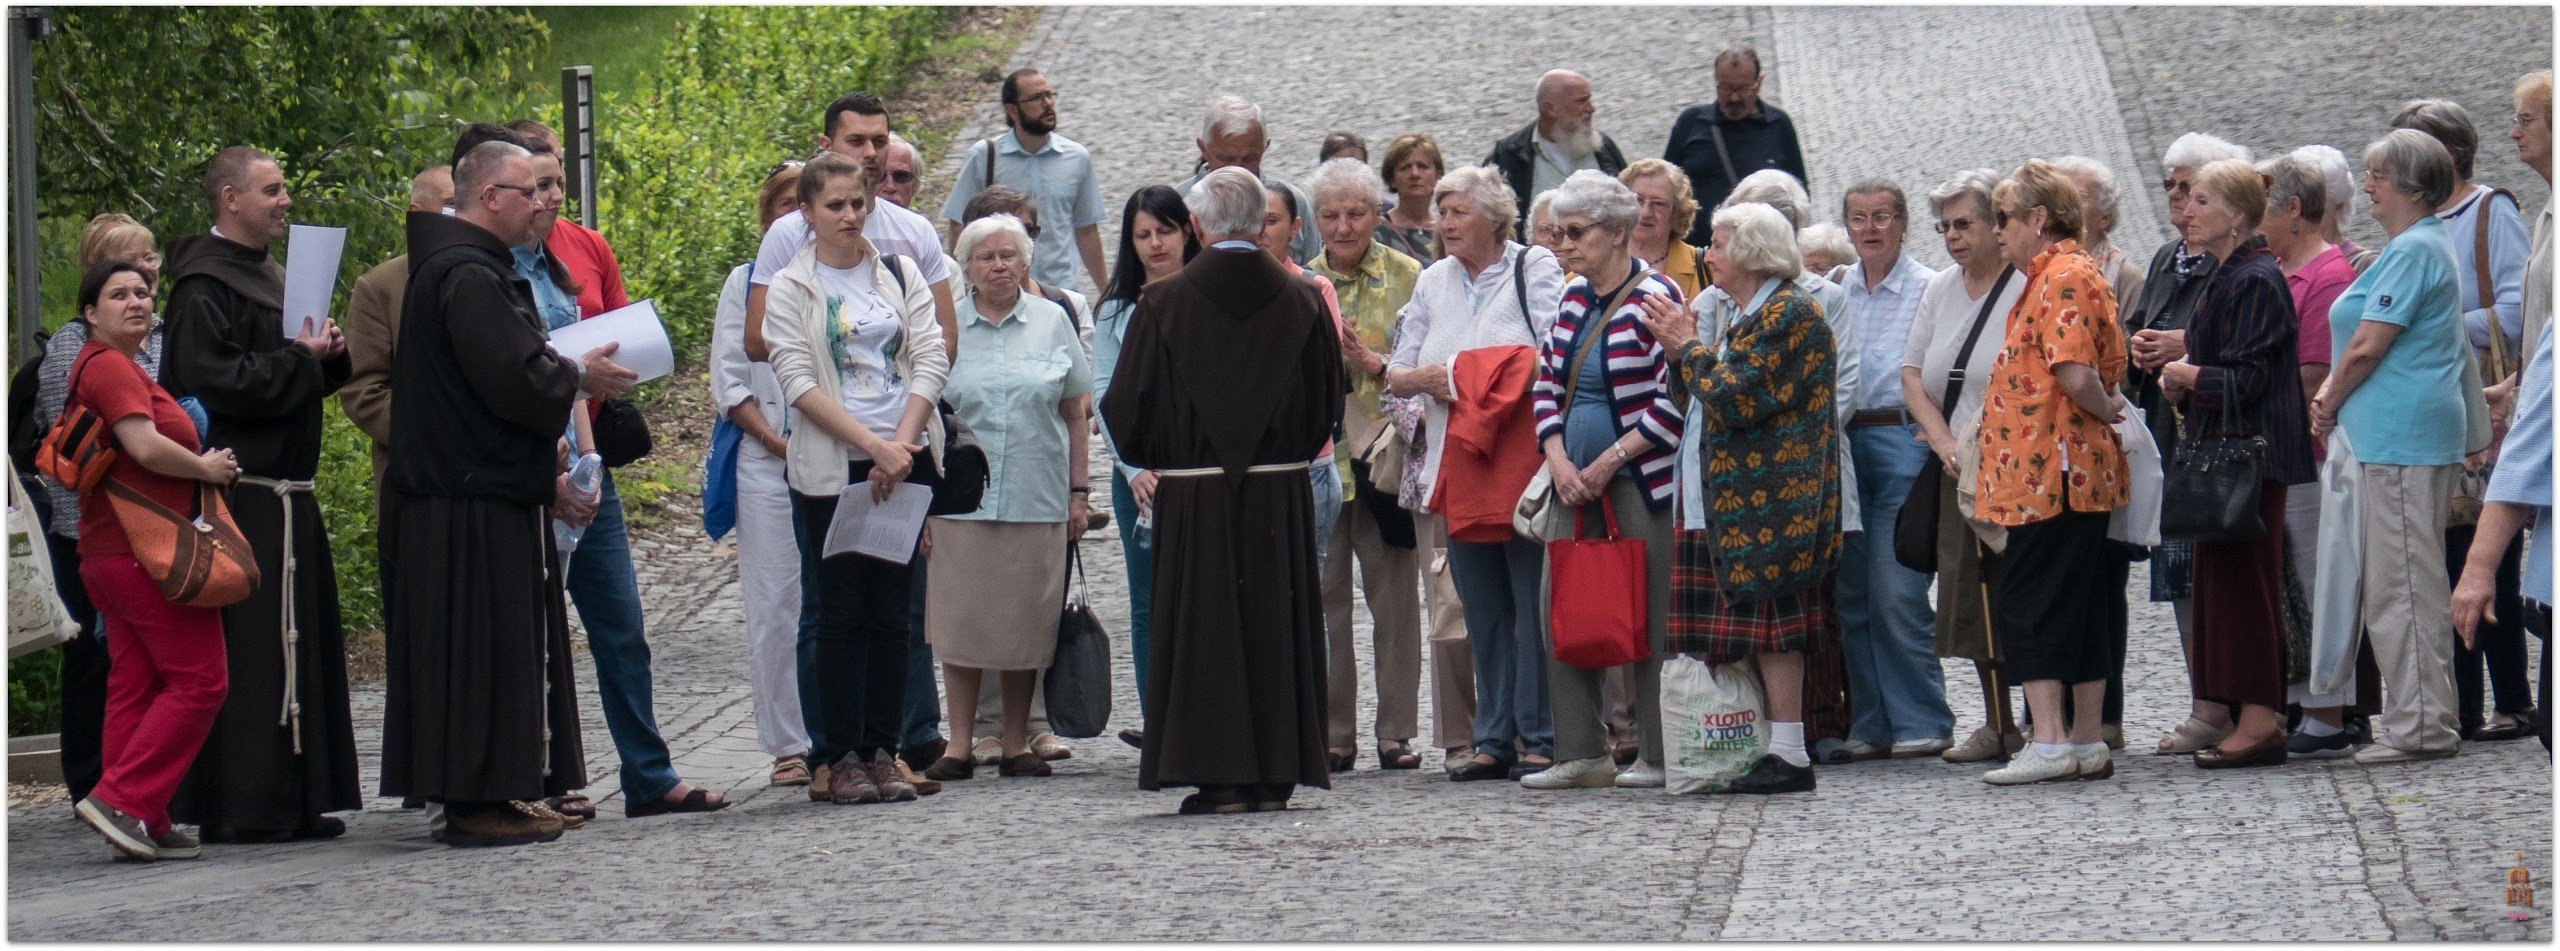 A streetscene of a Friar leading a group pf elderly pilgrims